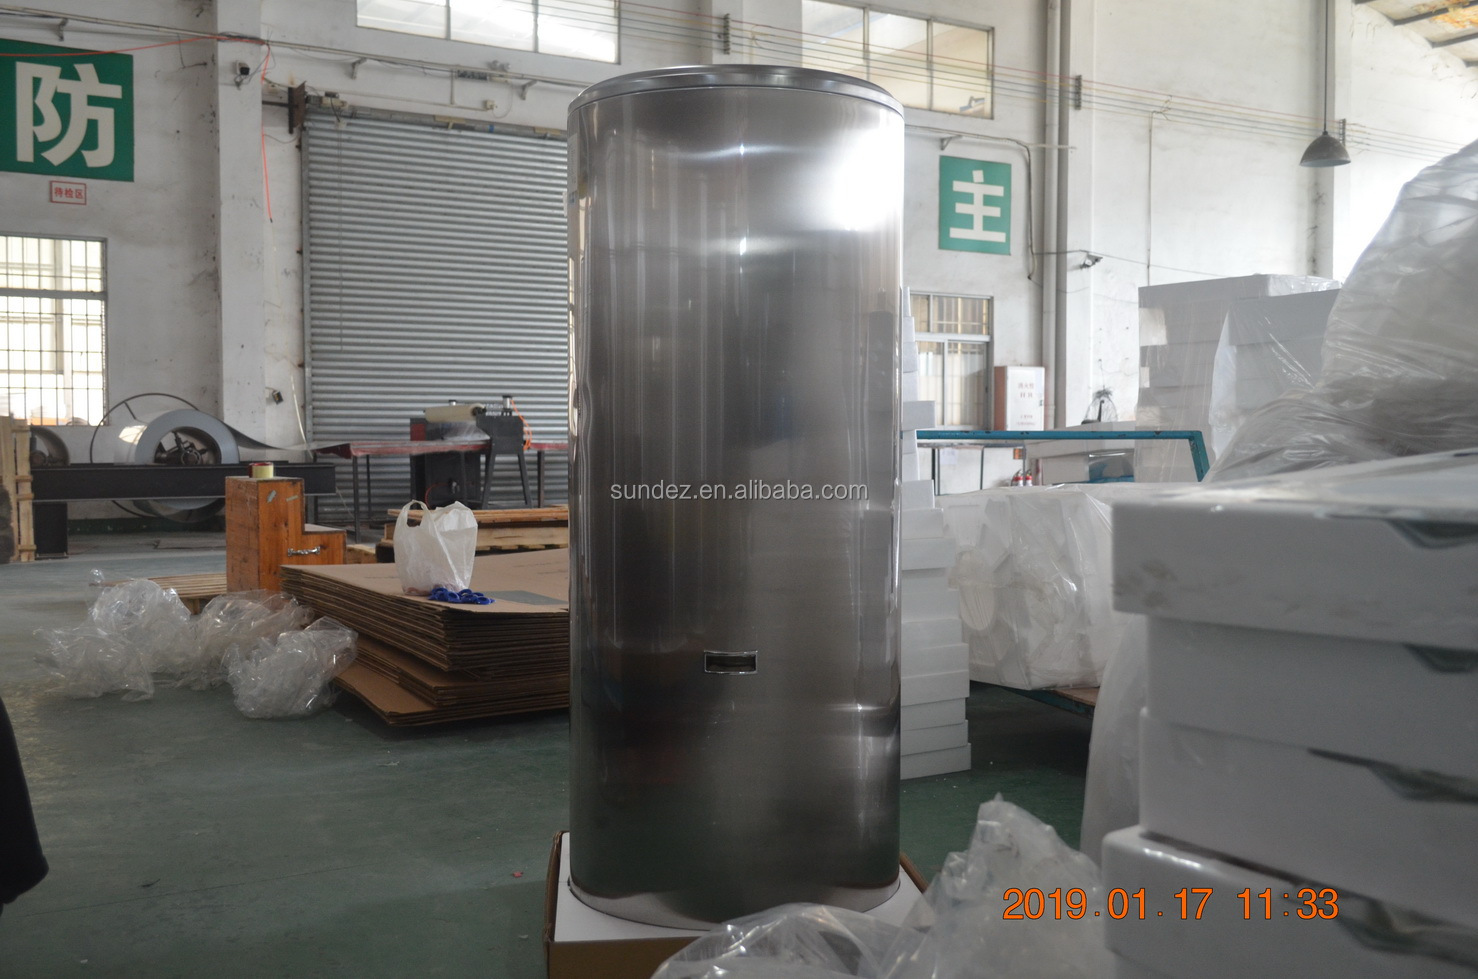 sundez WATER HEATER TANKS with 100-500 LITERS